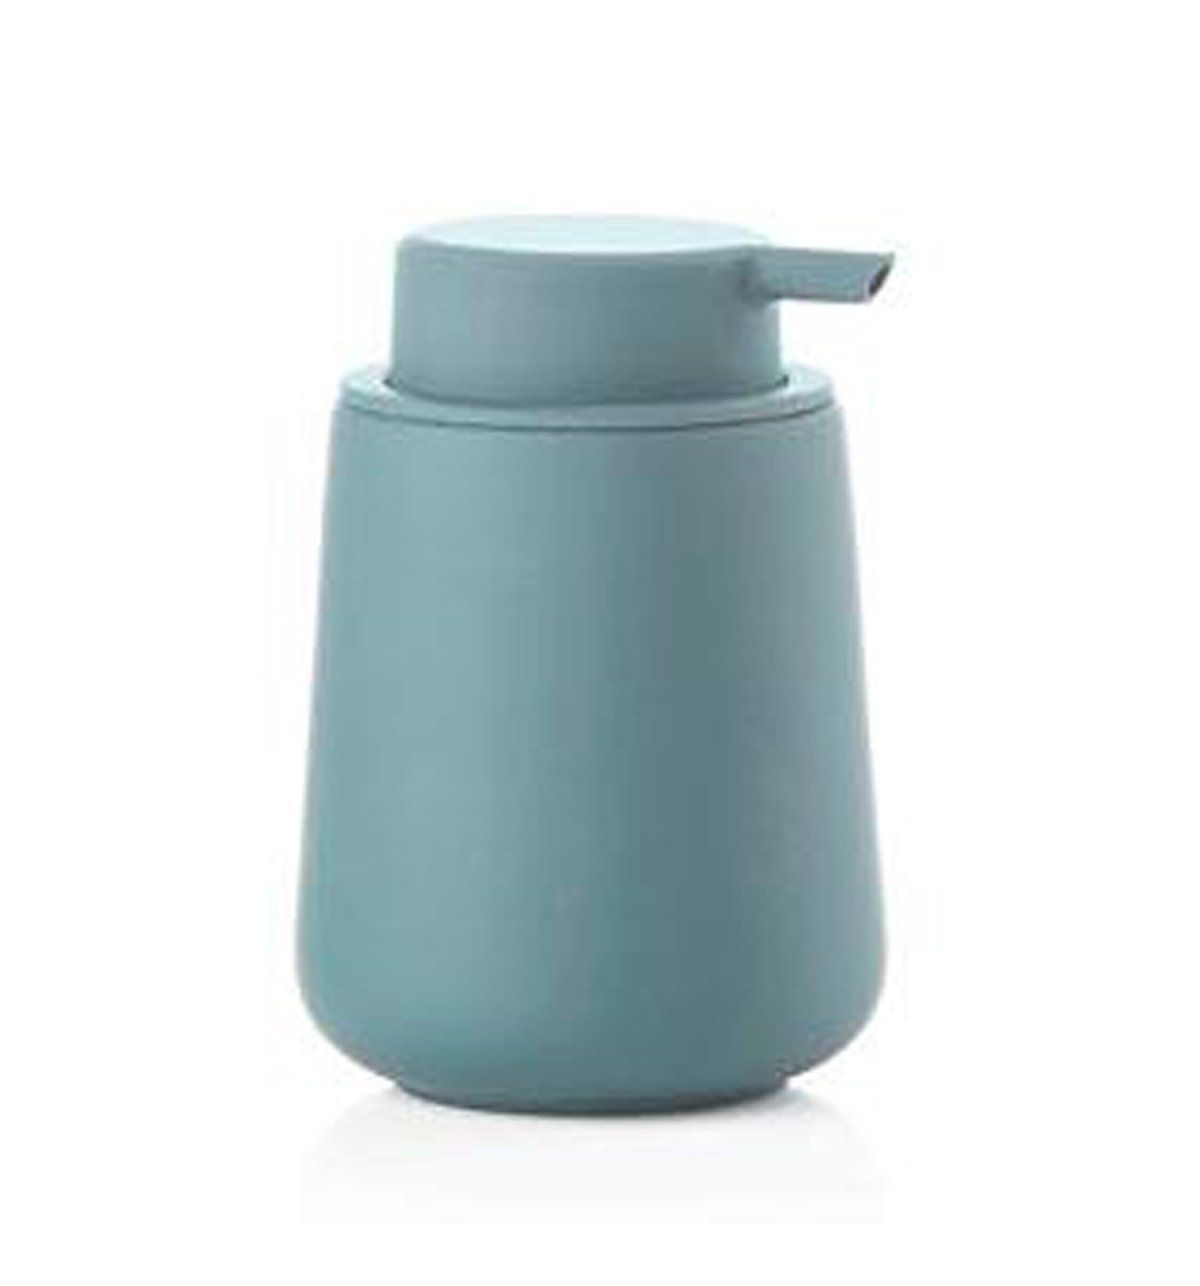 Zone - Nova One Soap Dispenzer - Cameo Blue (332041)